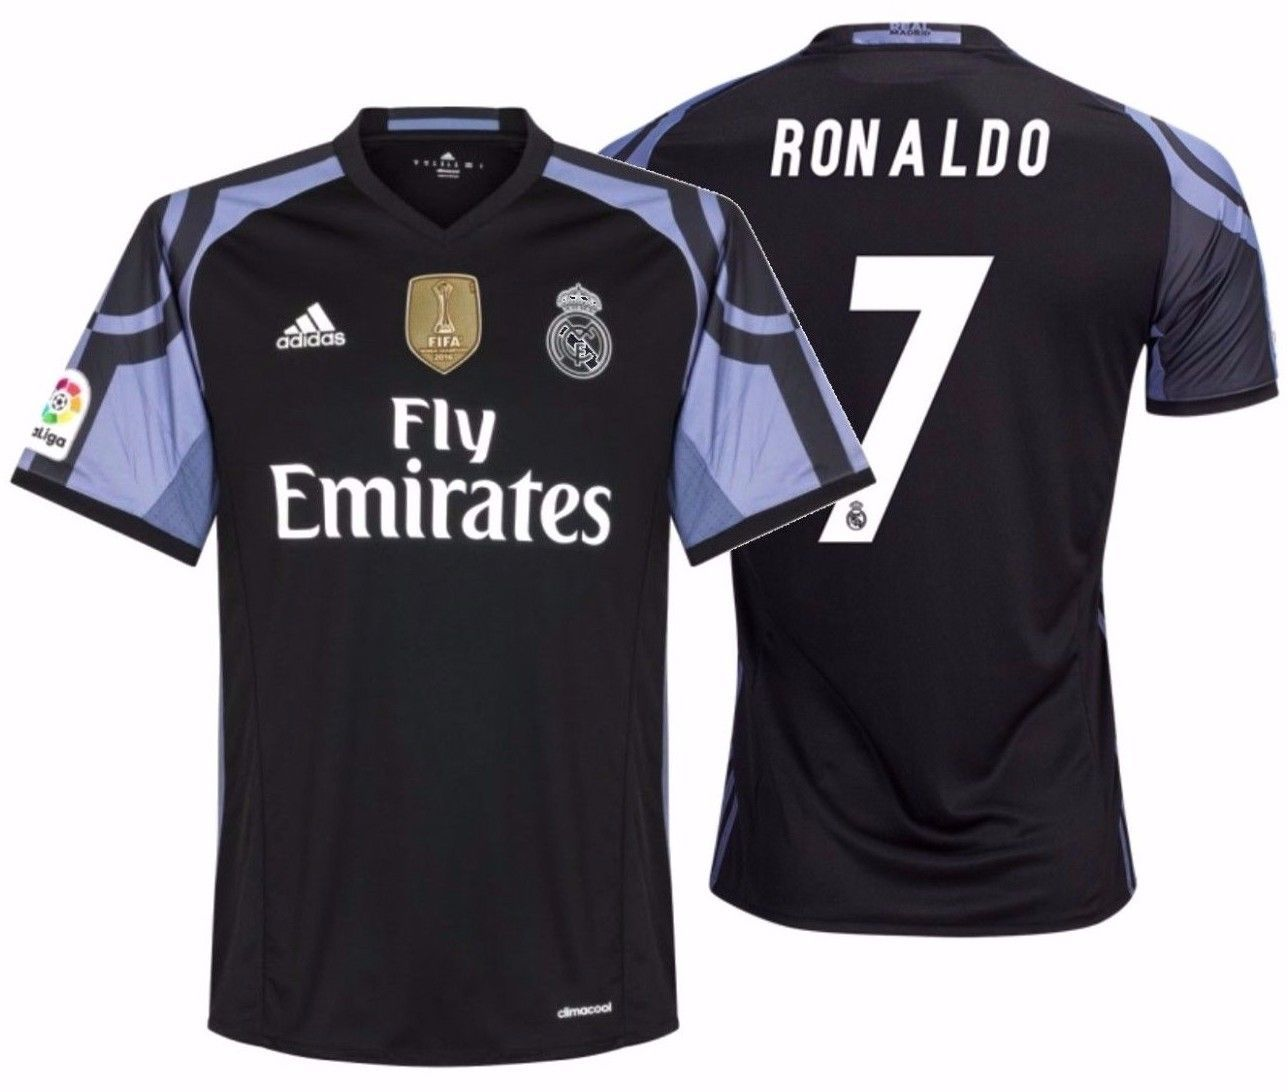 1d69f860925 Adidas Cristiano Ronaldo Real Madrid Fifa and 50 similar items. 57